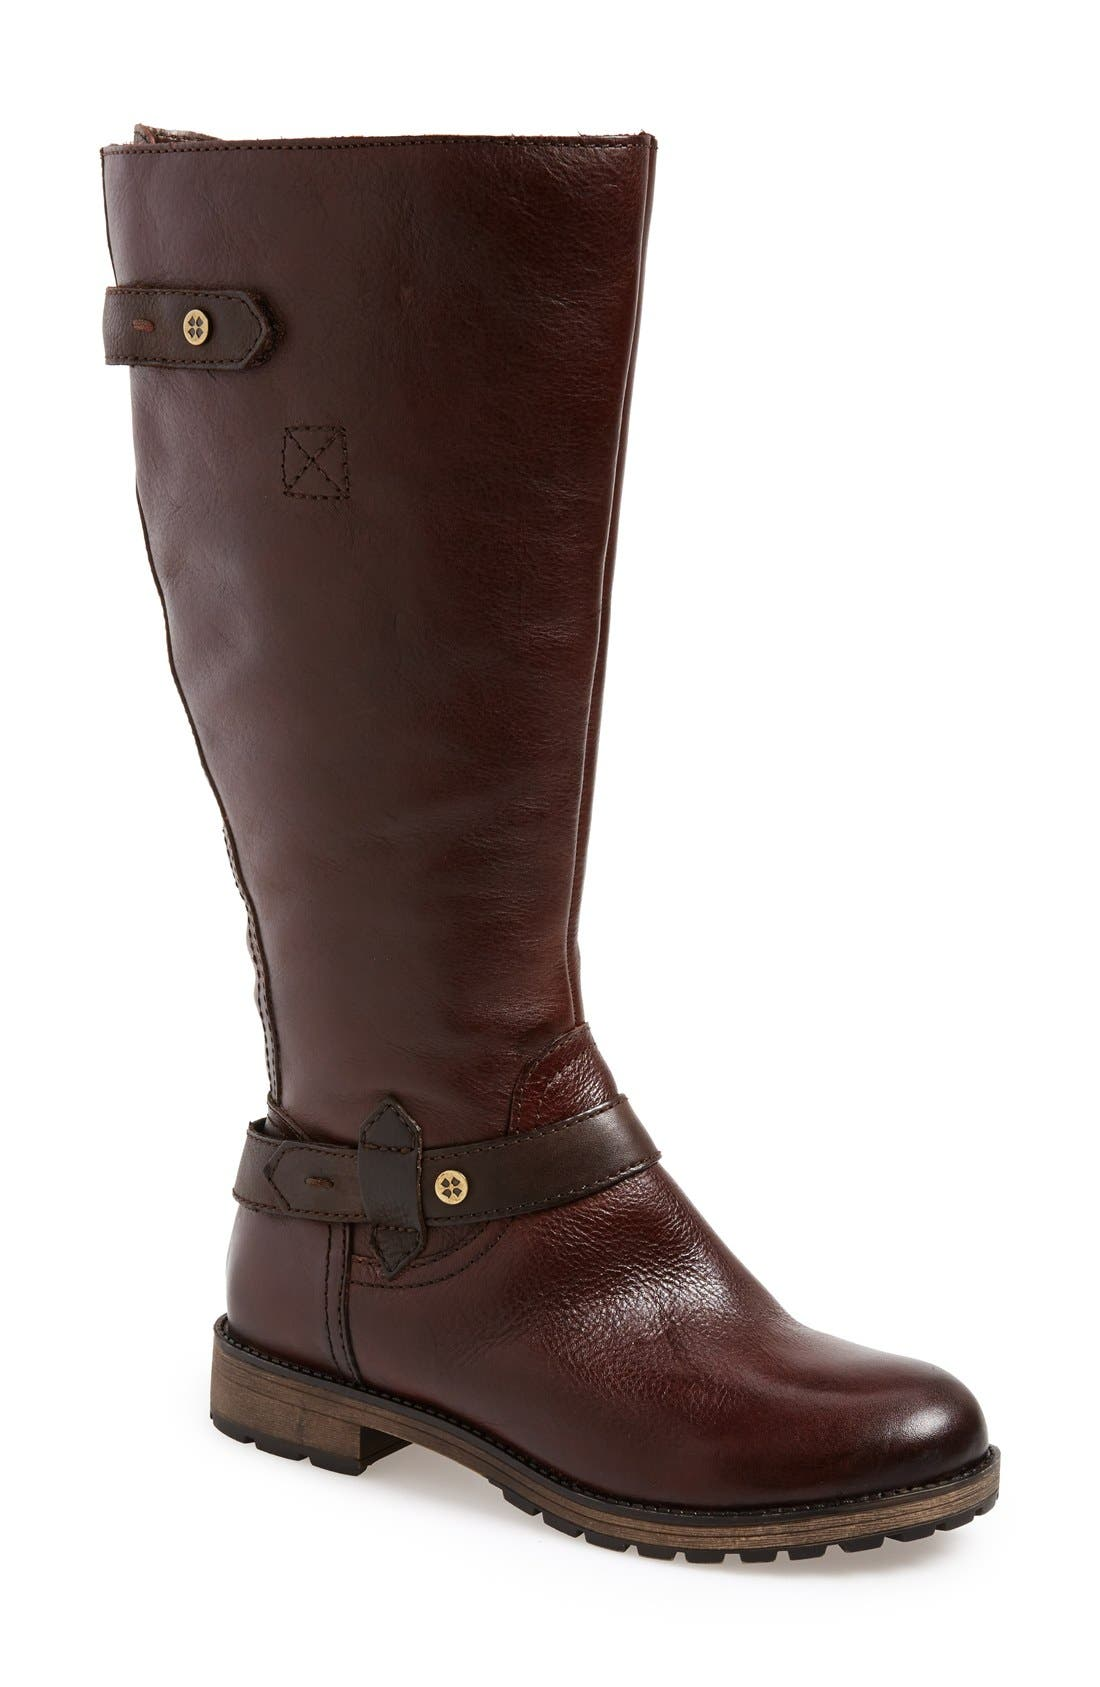 'Tanita' Boot,                         Main,                         color, Tan Leather Wide Calf